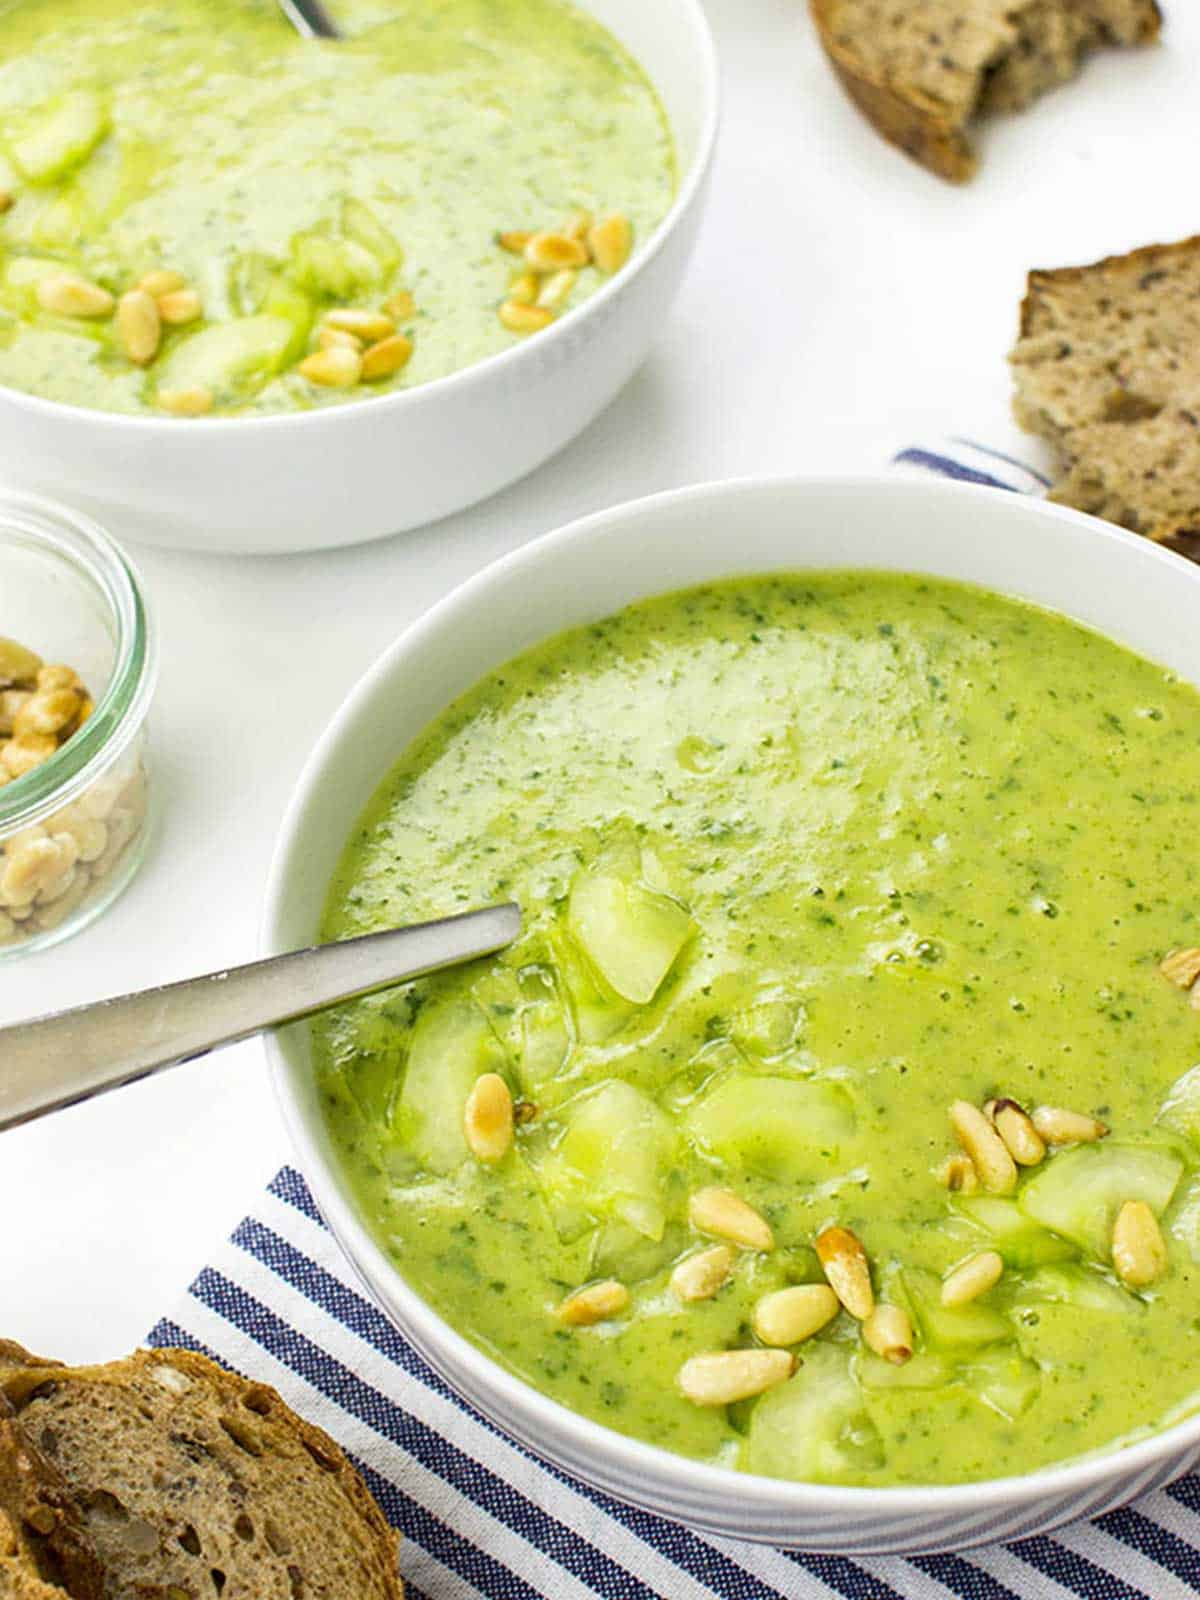 Vibrant green soup in white bowl with spoon and nuts on top.